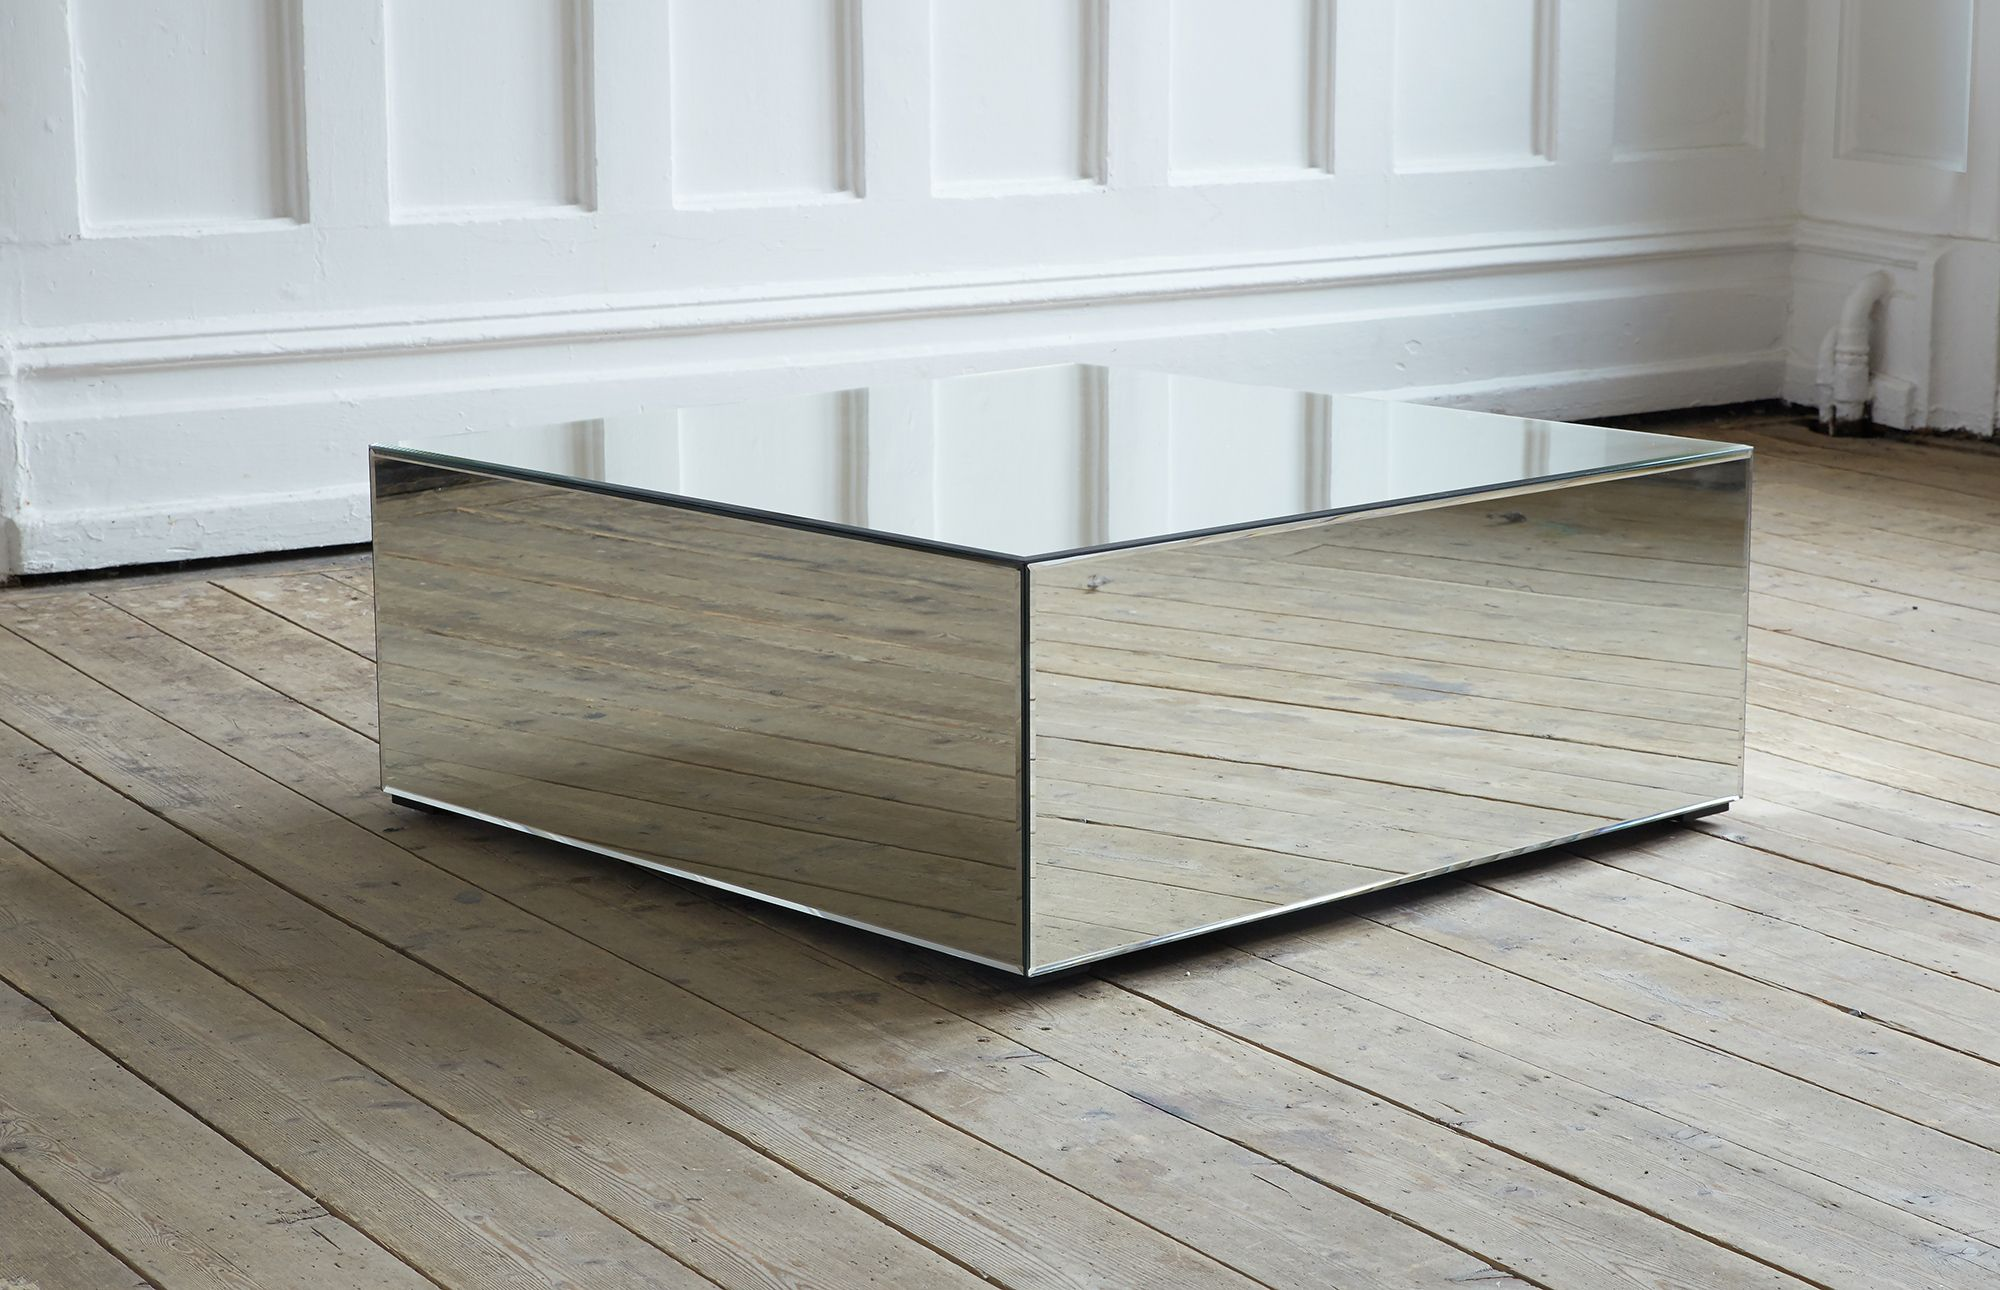 Square Coffee Table Made Entirely Of Mirrored Glass.